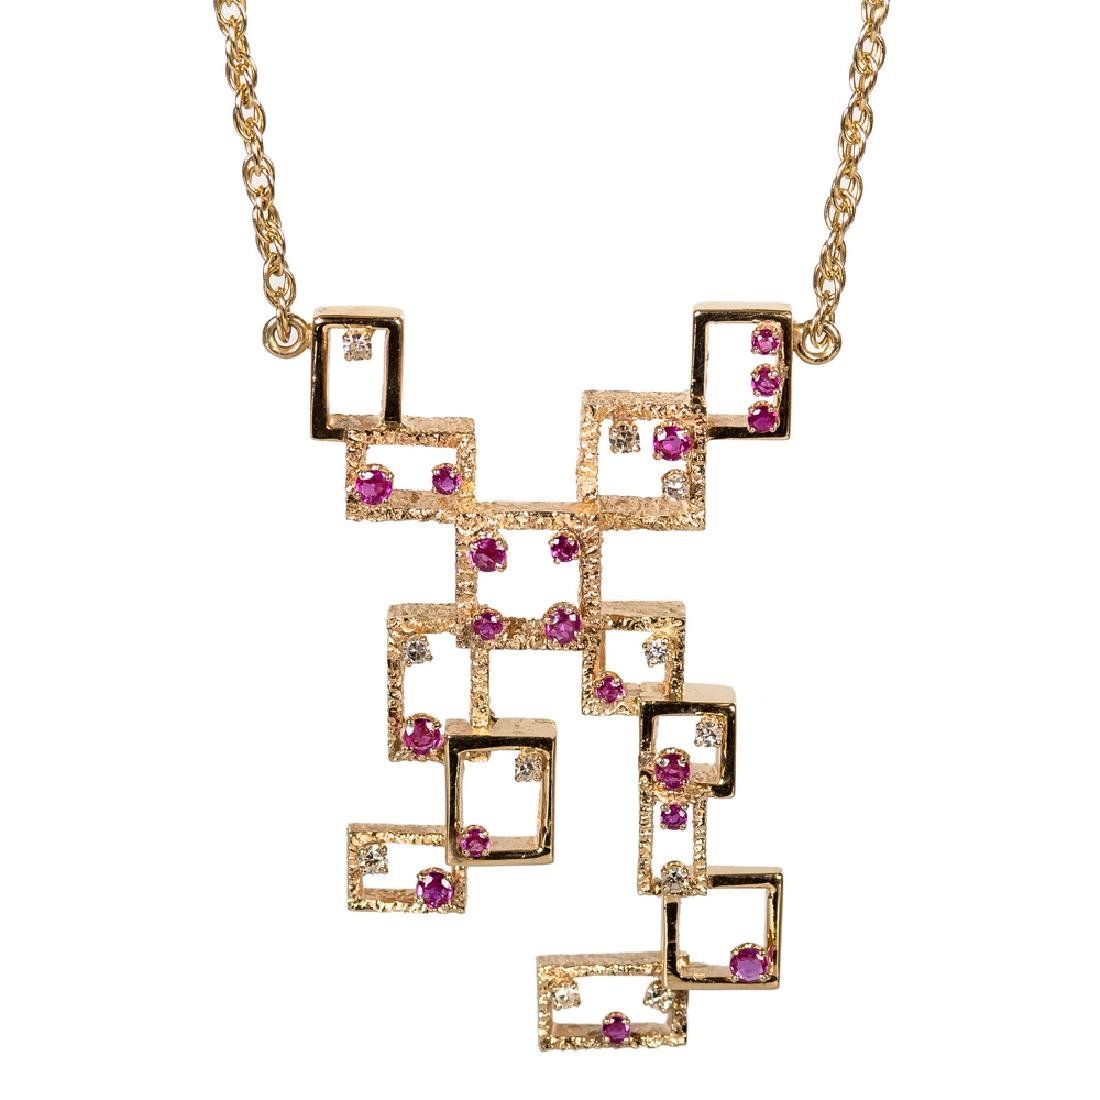 14 KARAT GOLD, DIAMOND, & RUBY MODERNIST NECKLACE